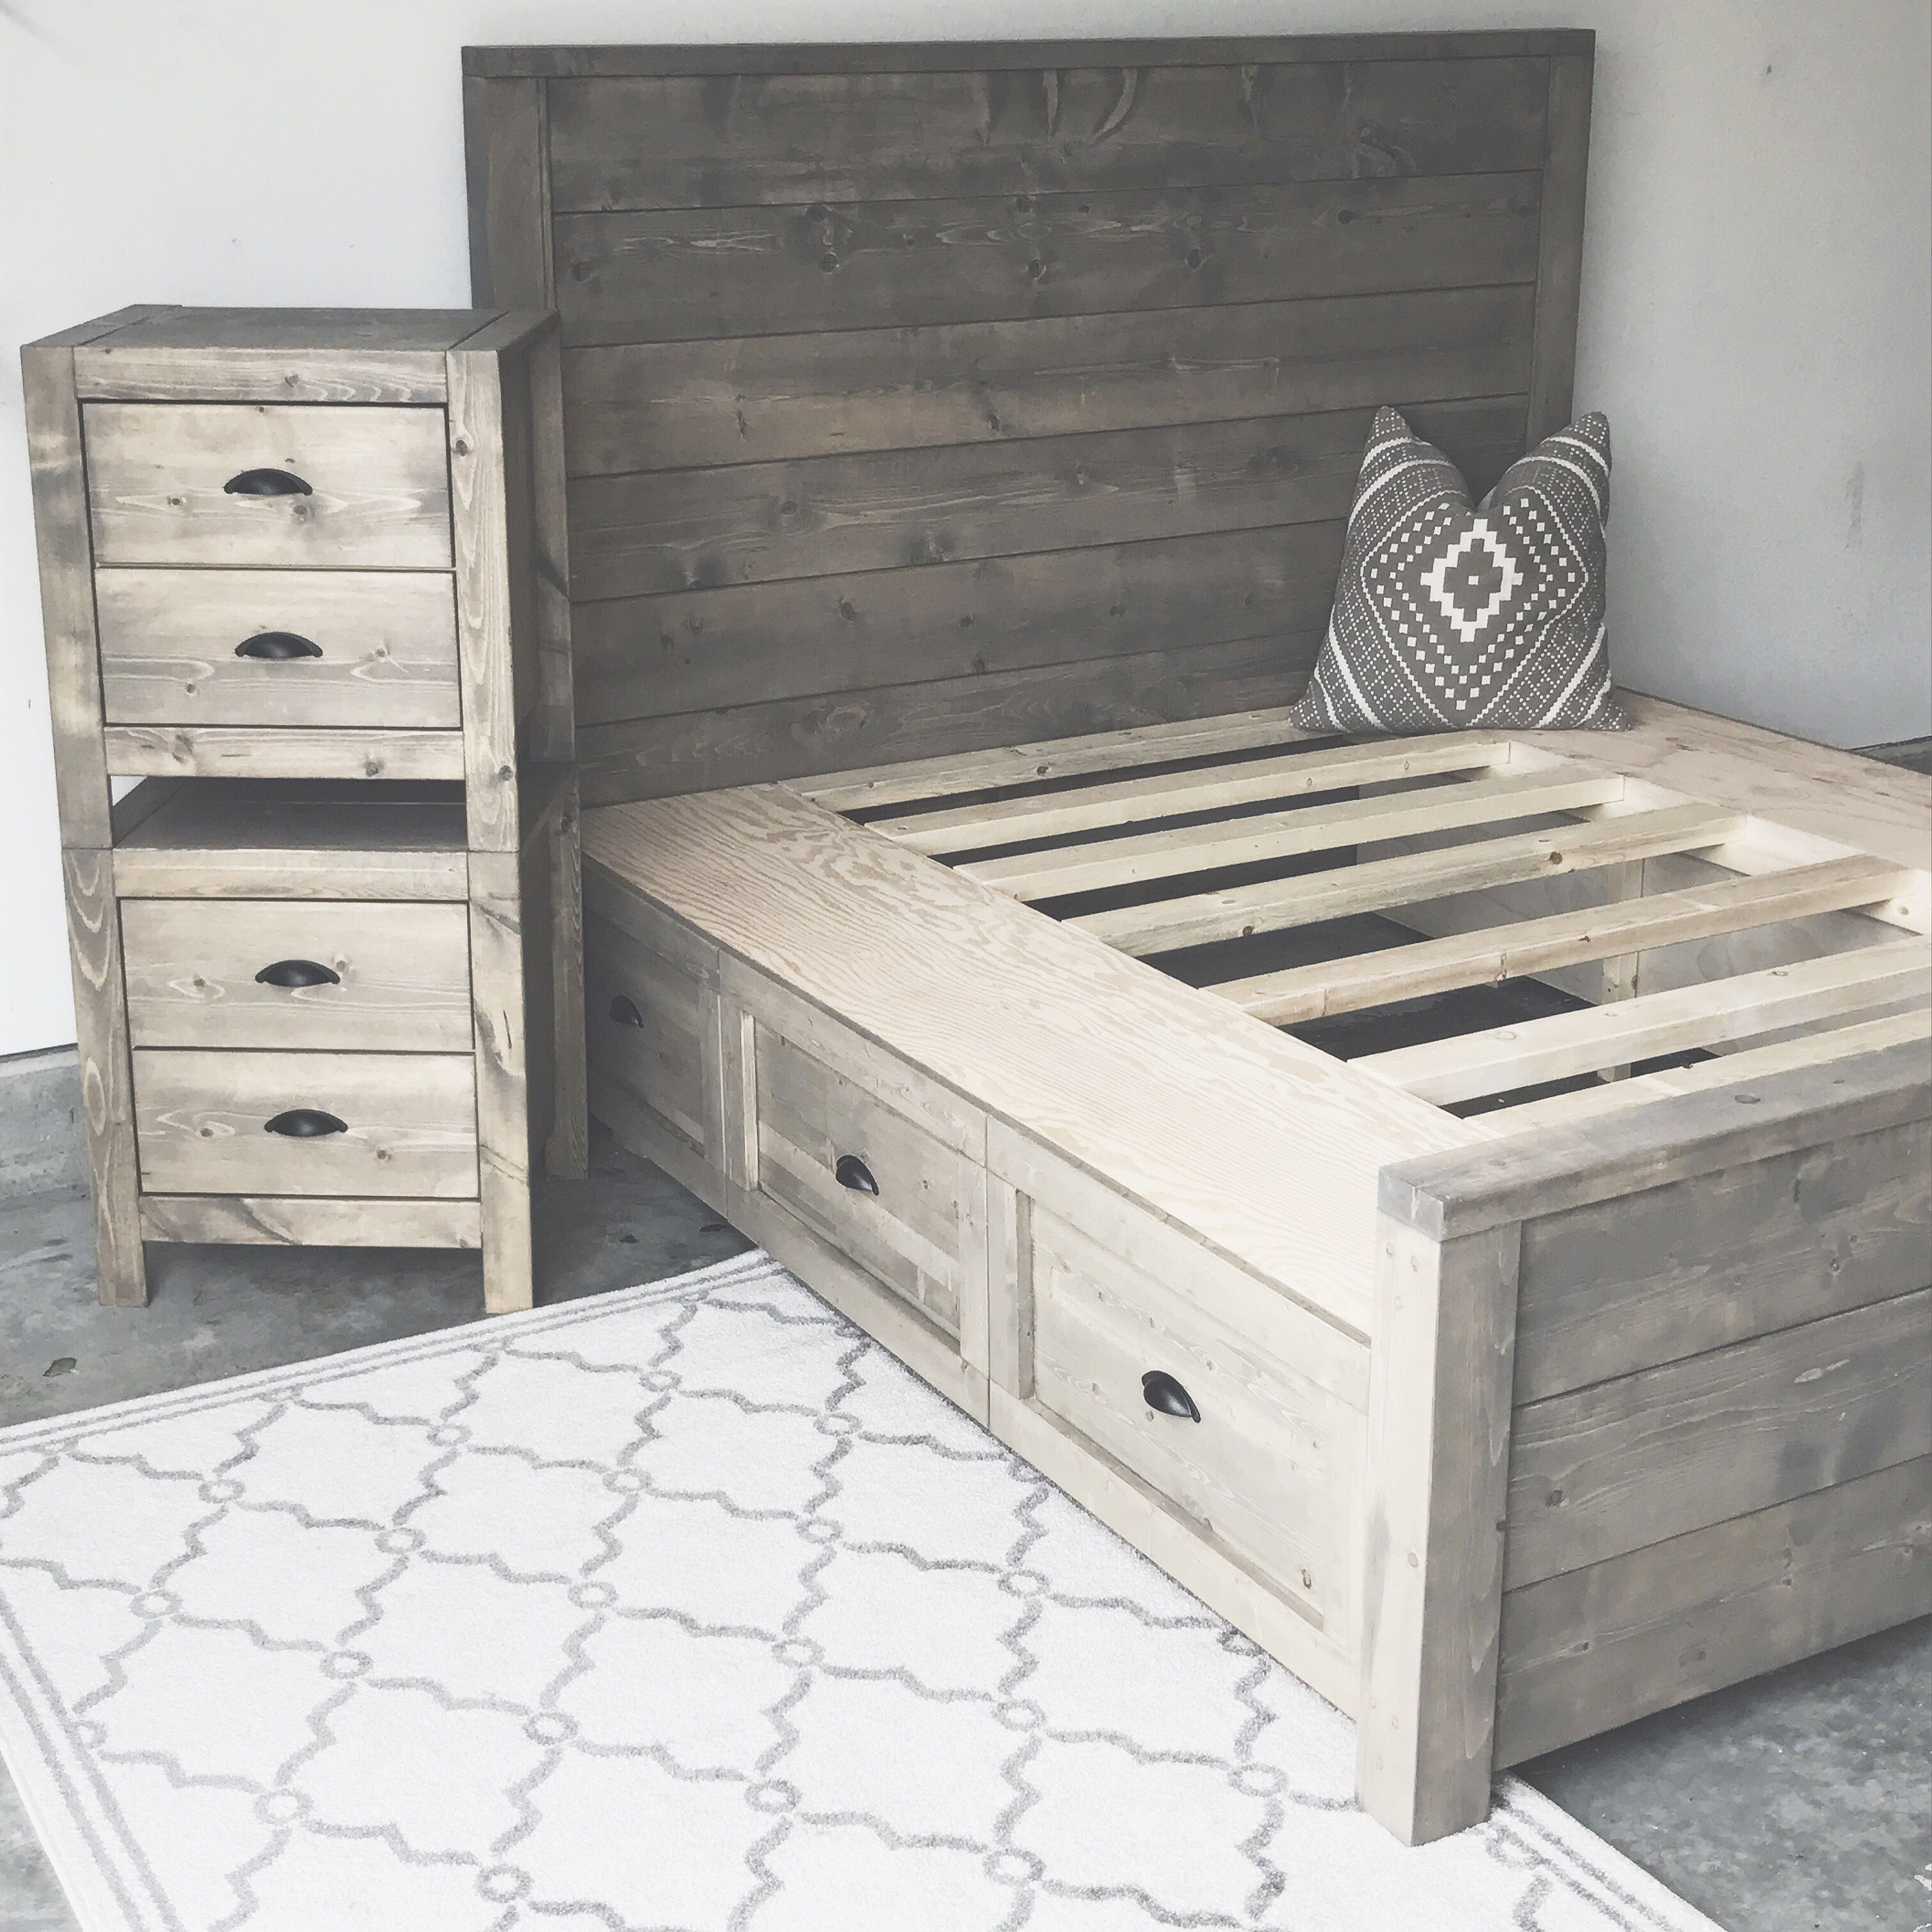 Affordable Contemporary Bedroom Furniture: DIY Storage Bed And Nightstand Oak + Stone In 2019